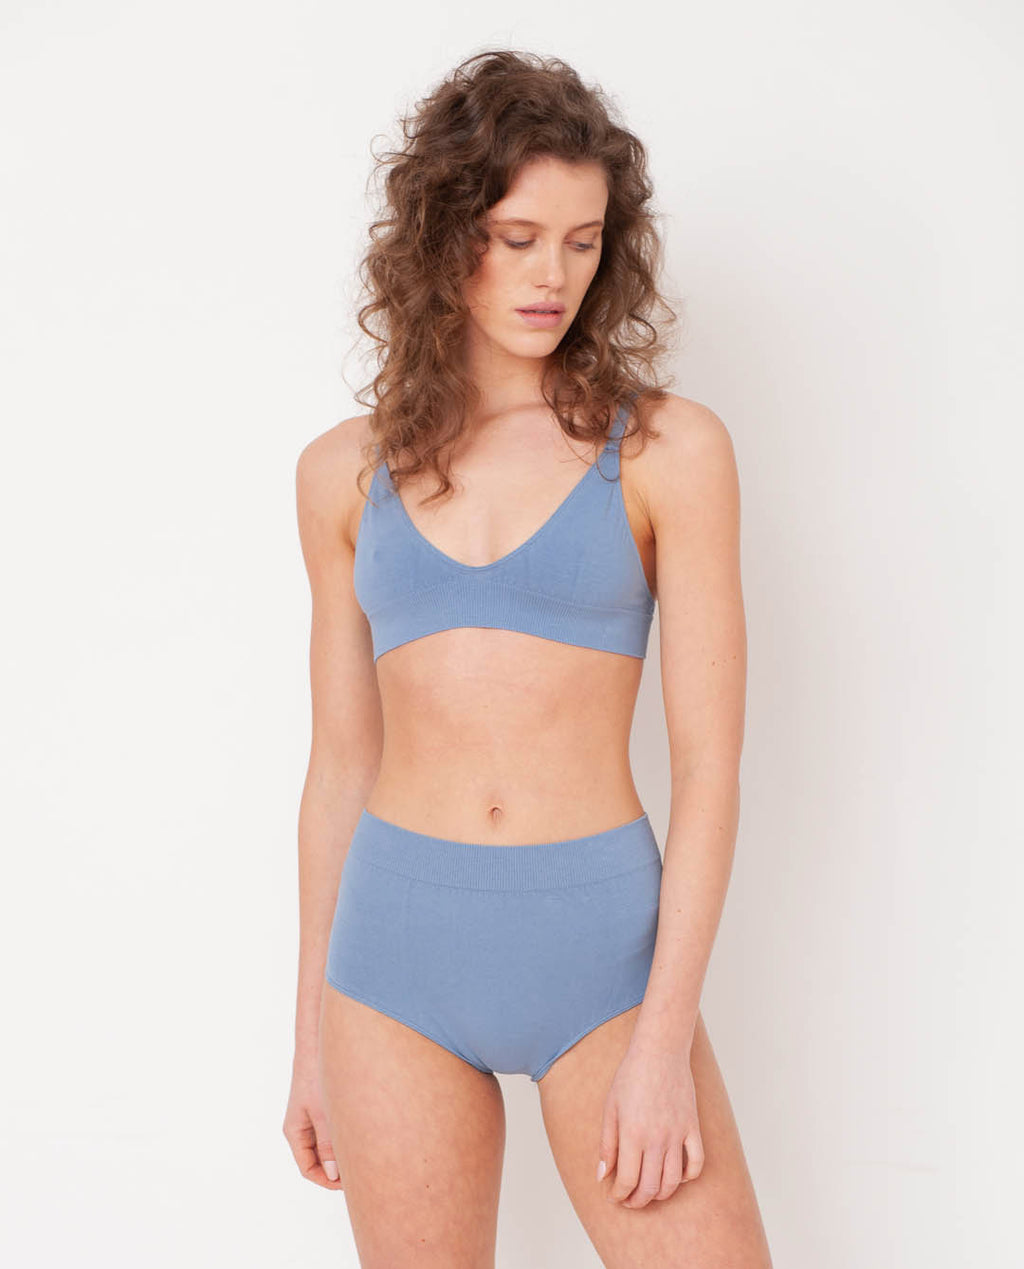 Endija Organic Cotton High Waisted Briefs In Sky